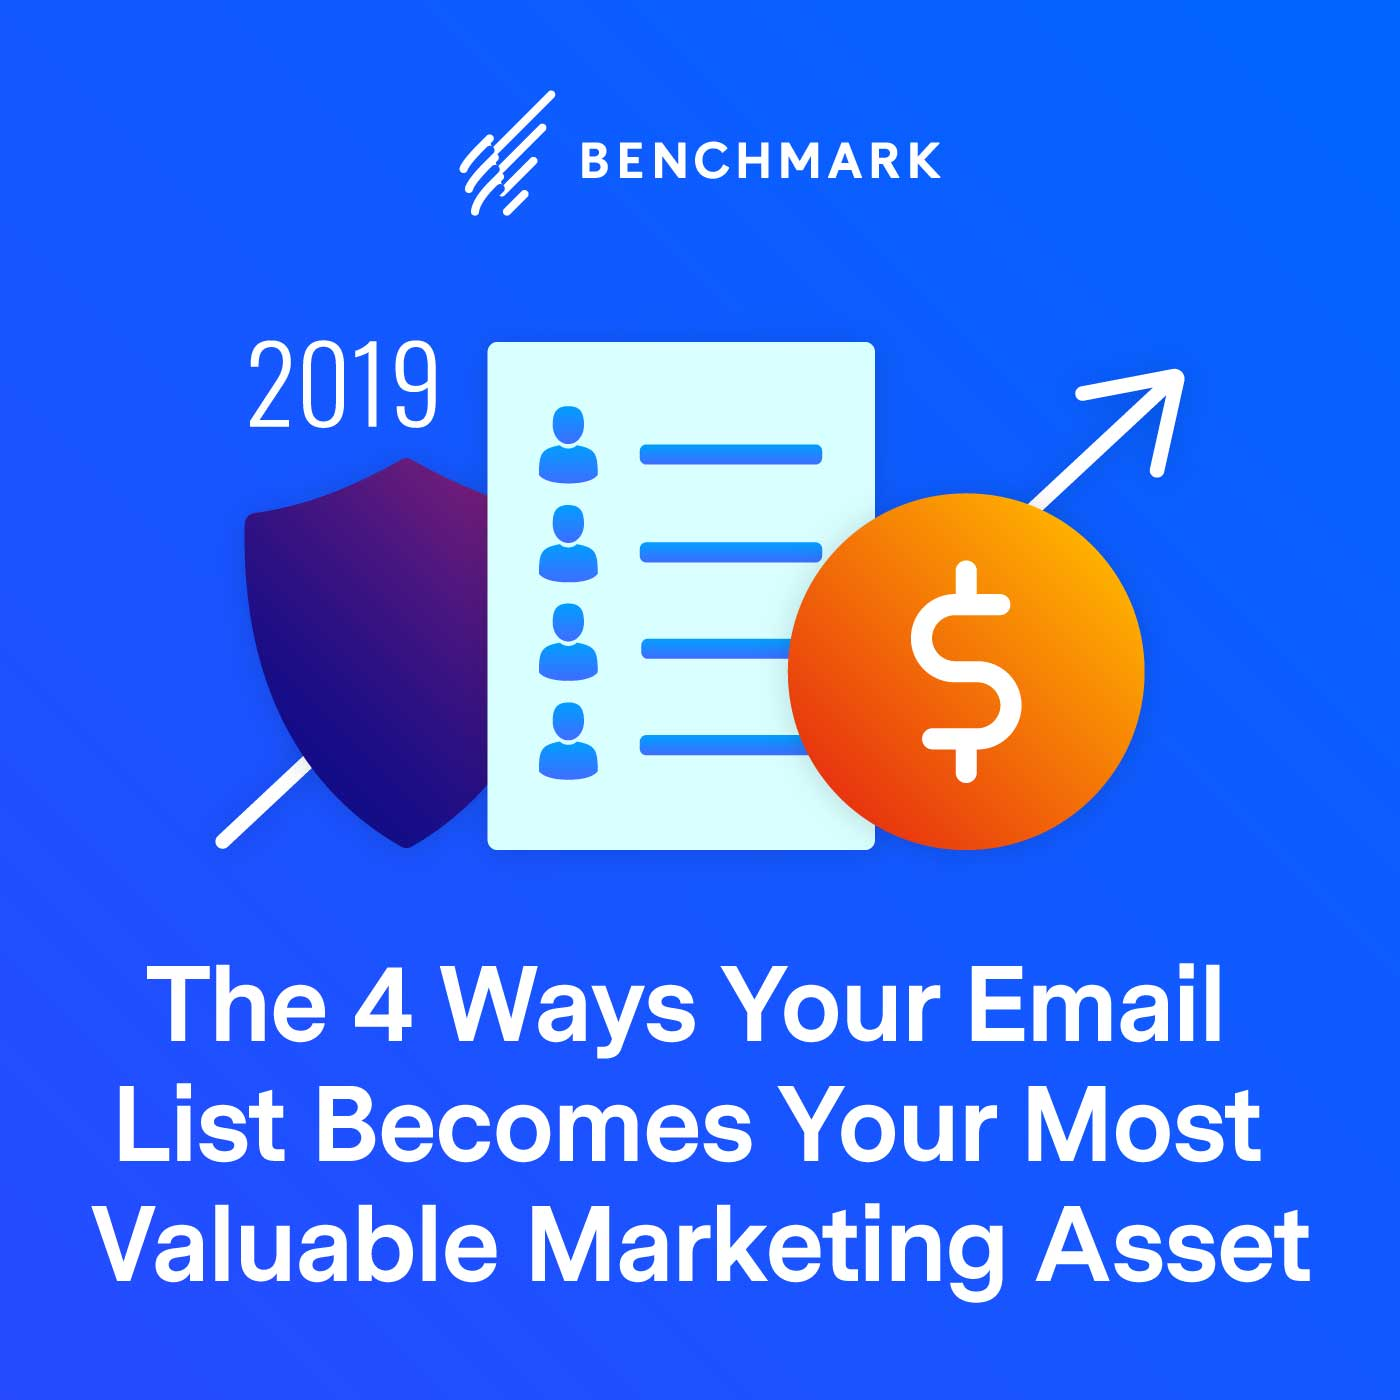 The 4 Ways Your Email List Becomes Your Most Valuable Marketing Asset